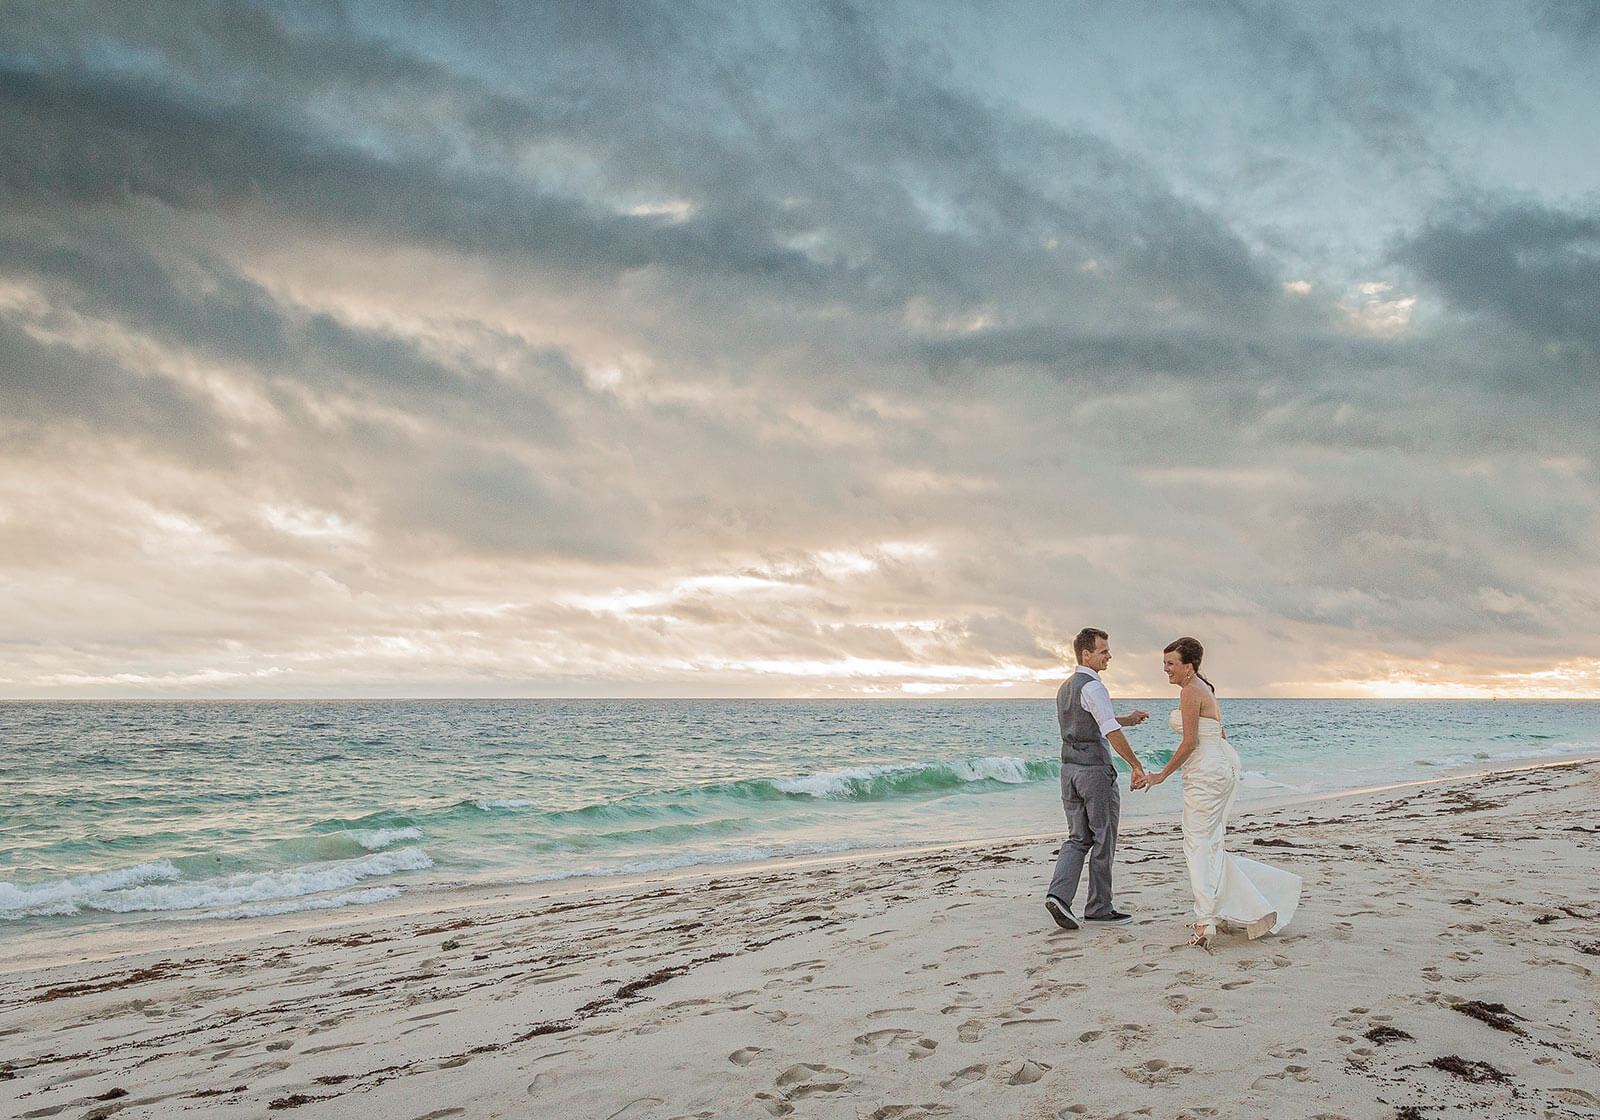 Quinns, Rock, Perth Wedding Photography by Peter Adams-Shawn